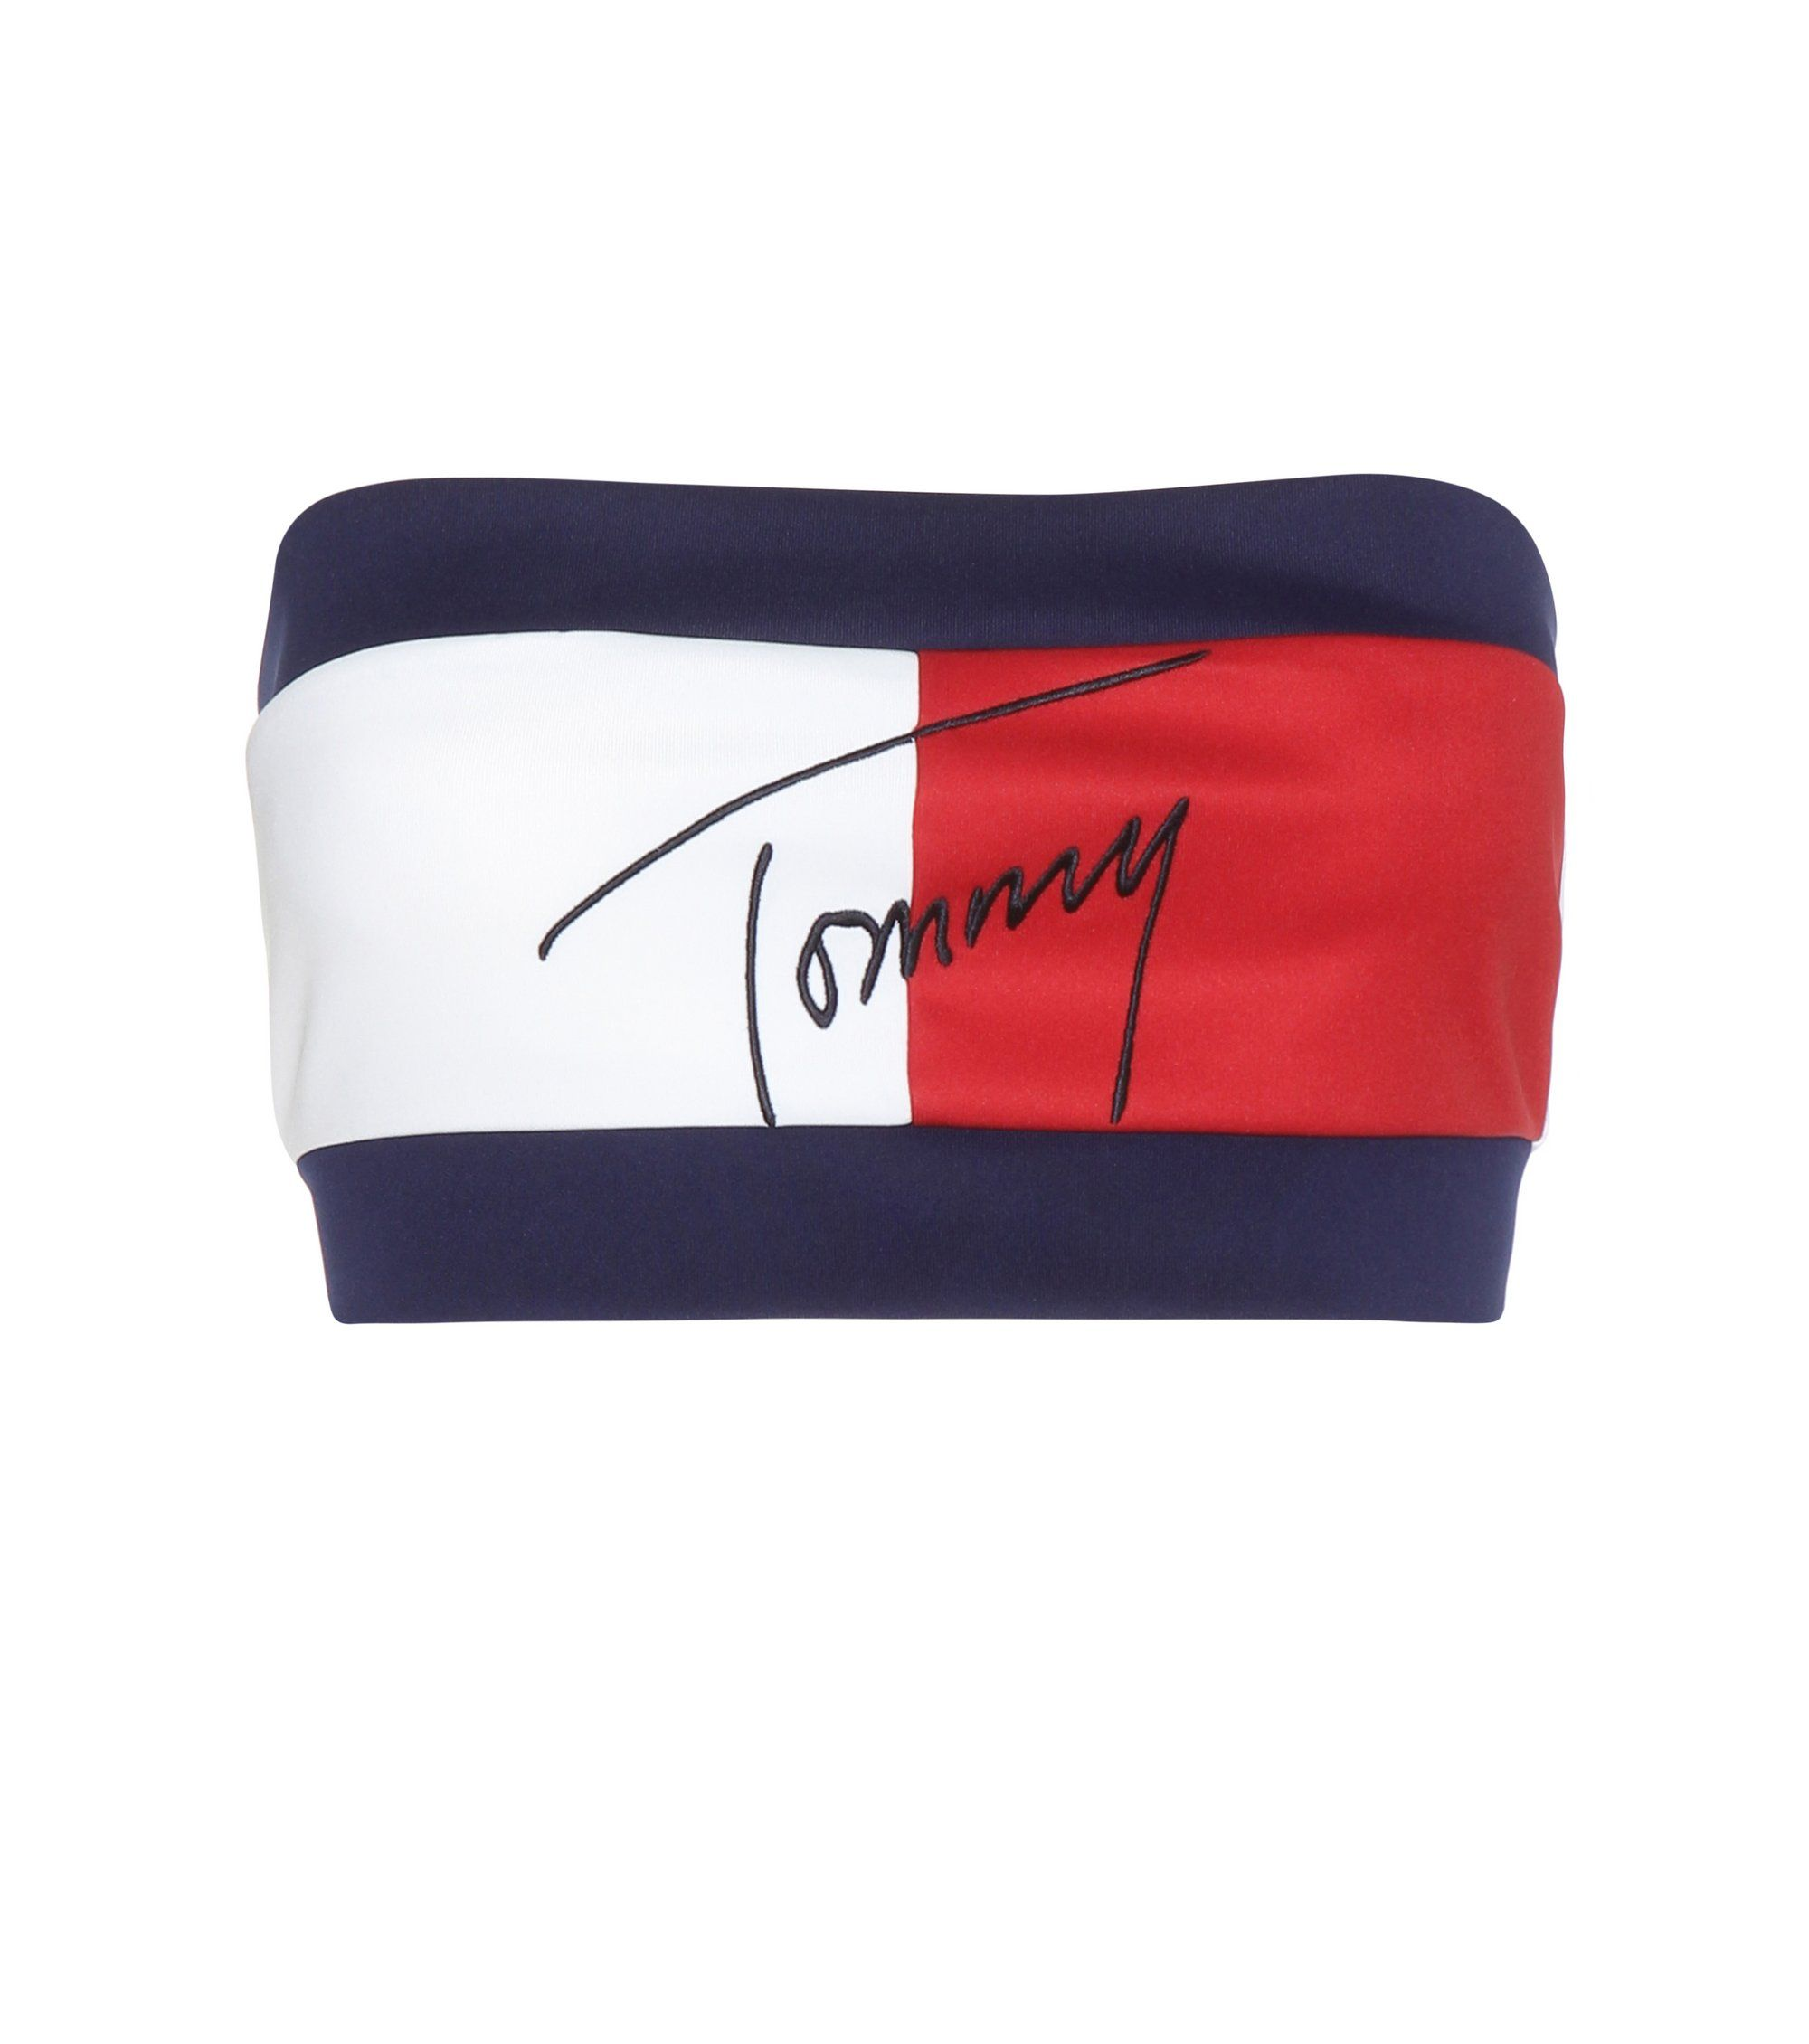 7f228451a5 Tommy Hilfiger Throws Back to Fashion s Favorite Era With a New ...